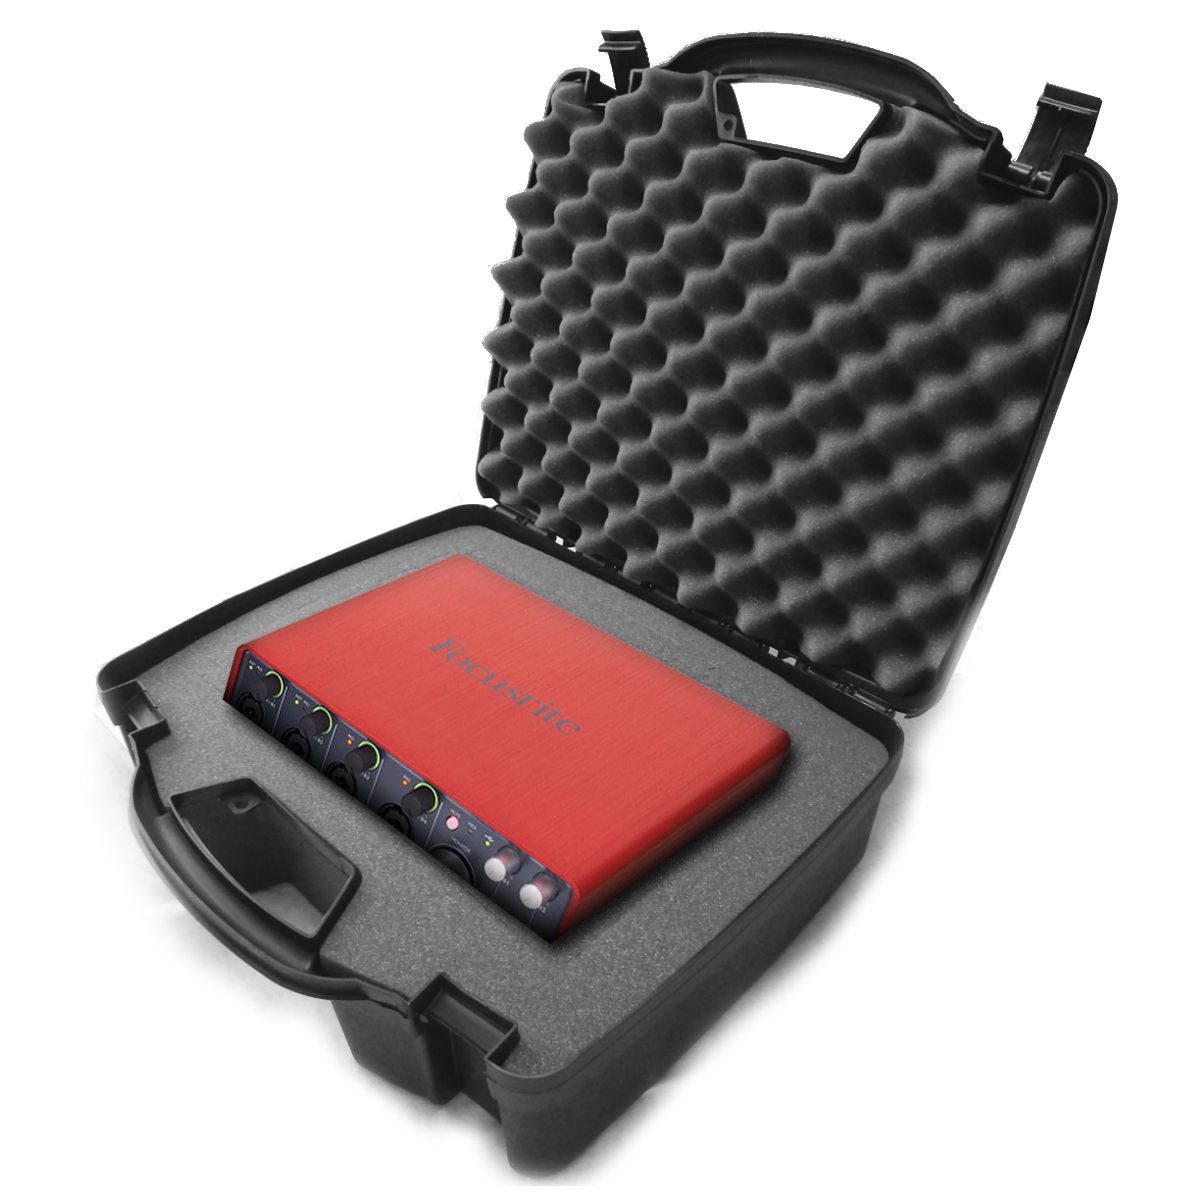 STUDIOCASE Protective Carrying Travel Hard Case with Dense foam - fits Studio USB Desktop Stereo Recorders Focusrite Scarlett 2i2 , 6i6 , 2i4 , 18i8 , Solo Compact USB Audio Interfaces and Recording Mixer Accessories by Distro-Tech